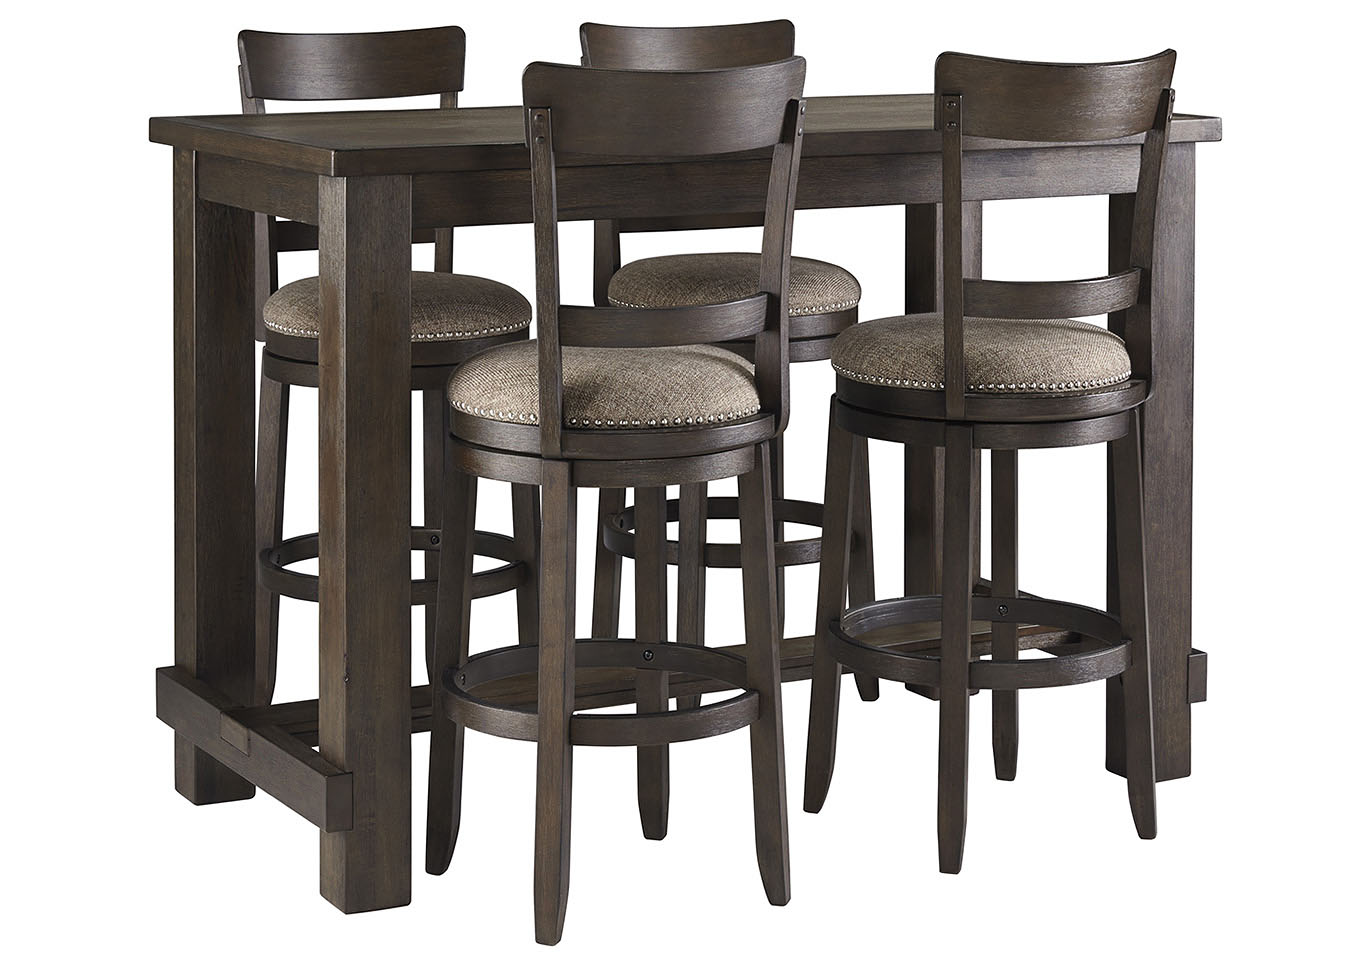 Drewing Brown Bar Table w/4 Upholstered Barstools,Signature Design By Ashley